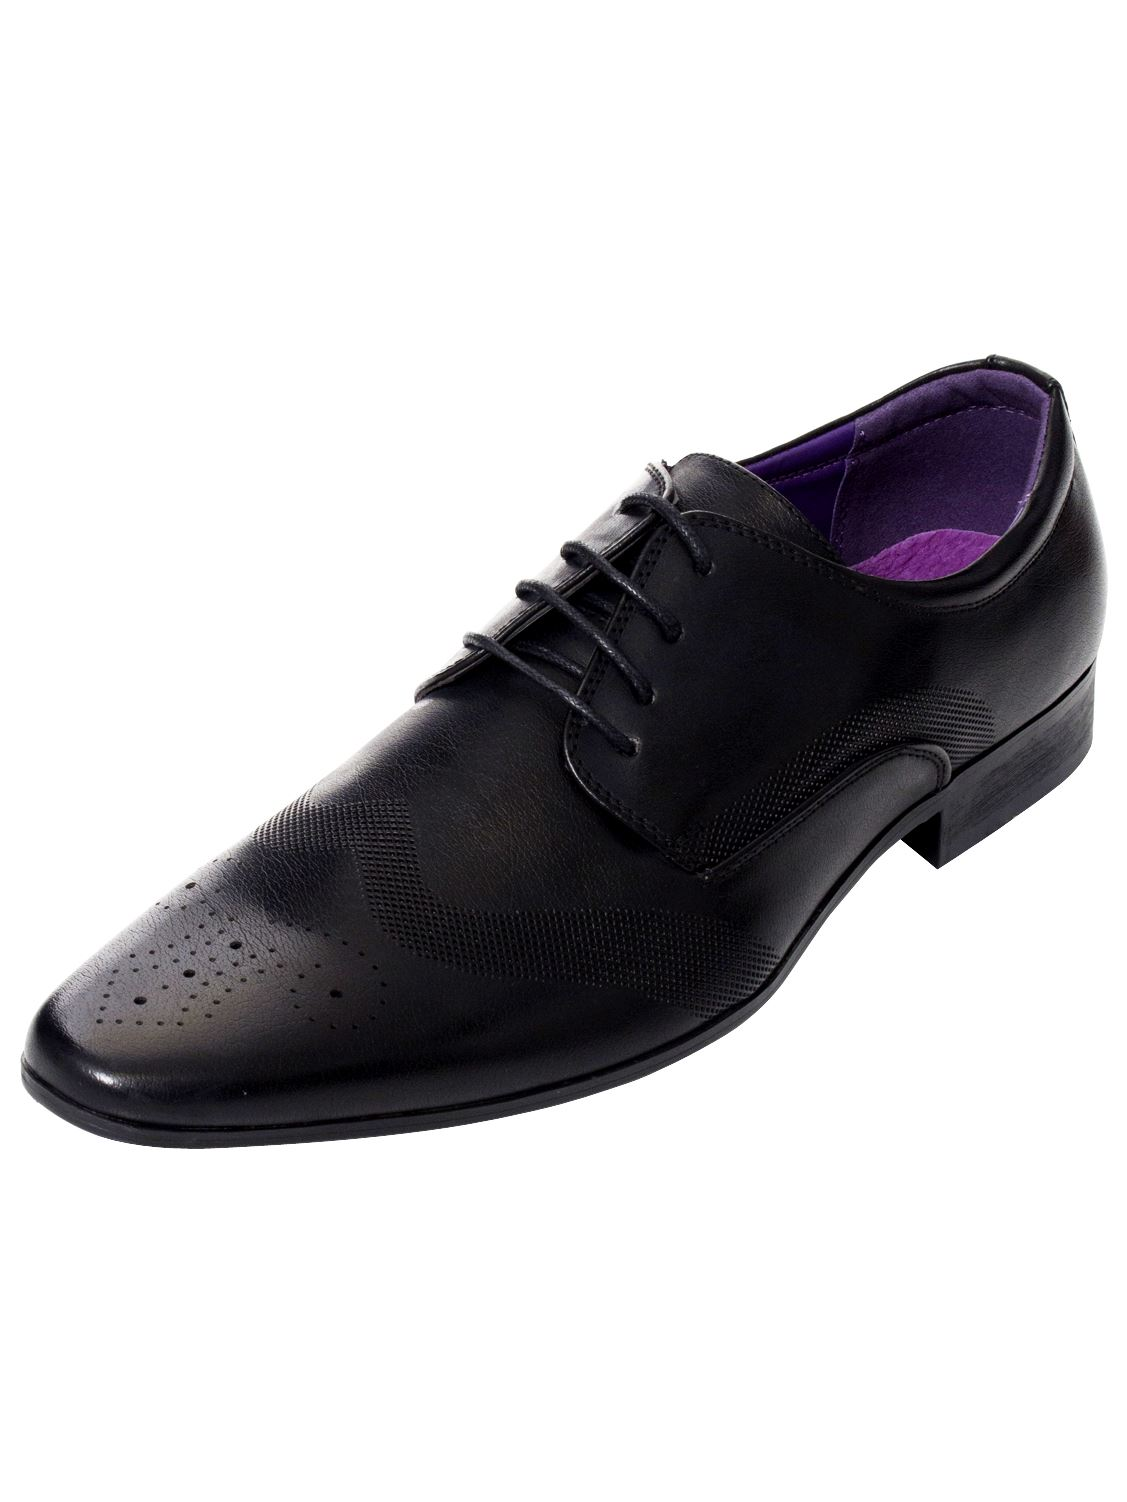 Mens-Faux-Leather-Shoes-Smart-Formal-Wedding-Office-Lace-Up-Designer-Brogues thumbnail 3